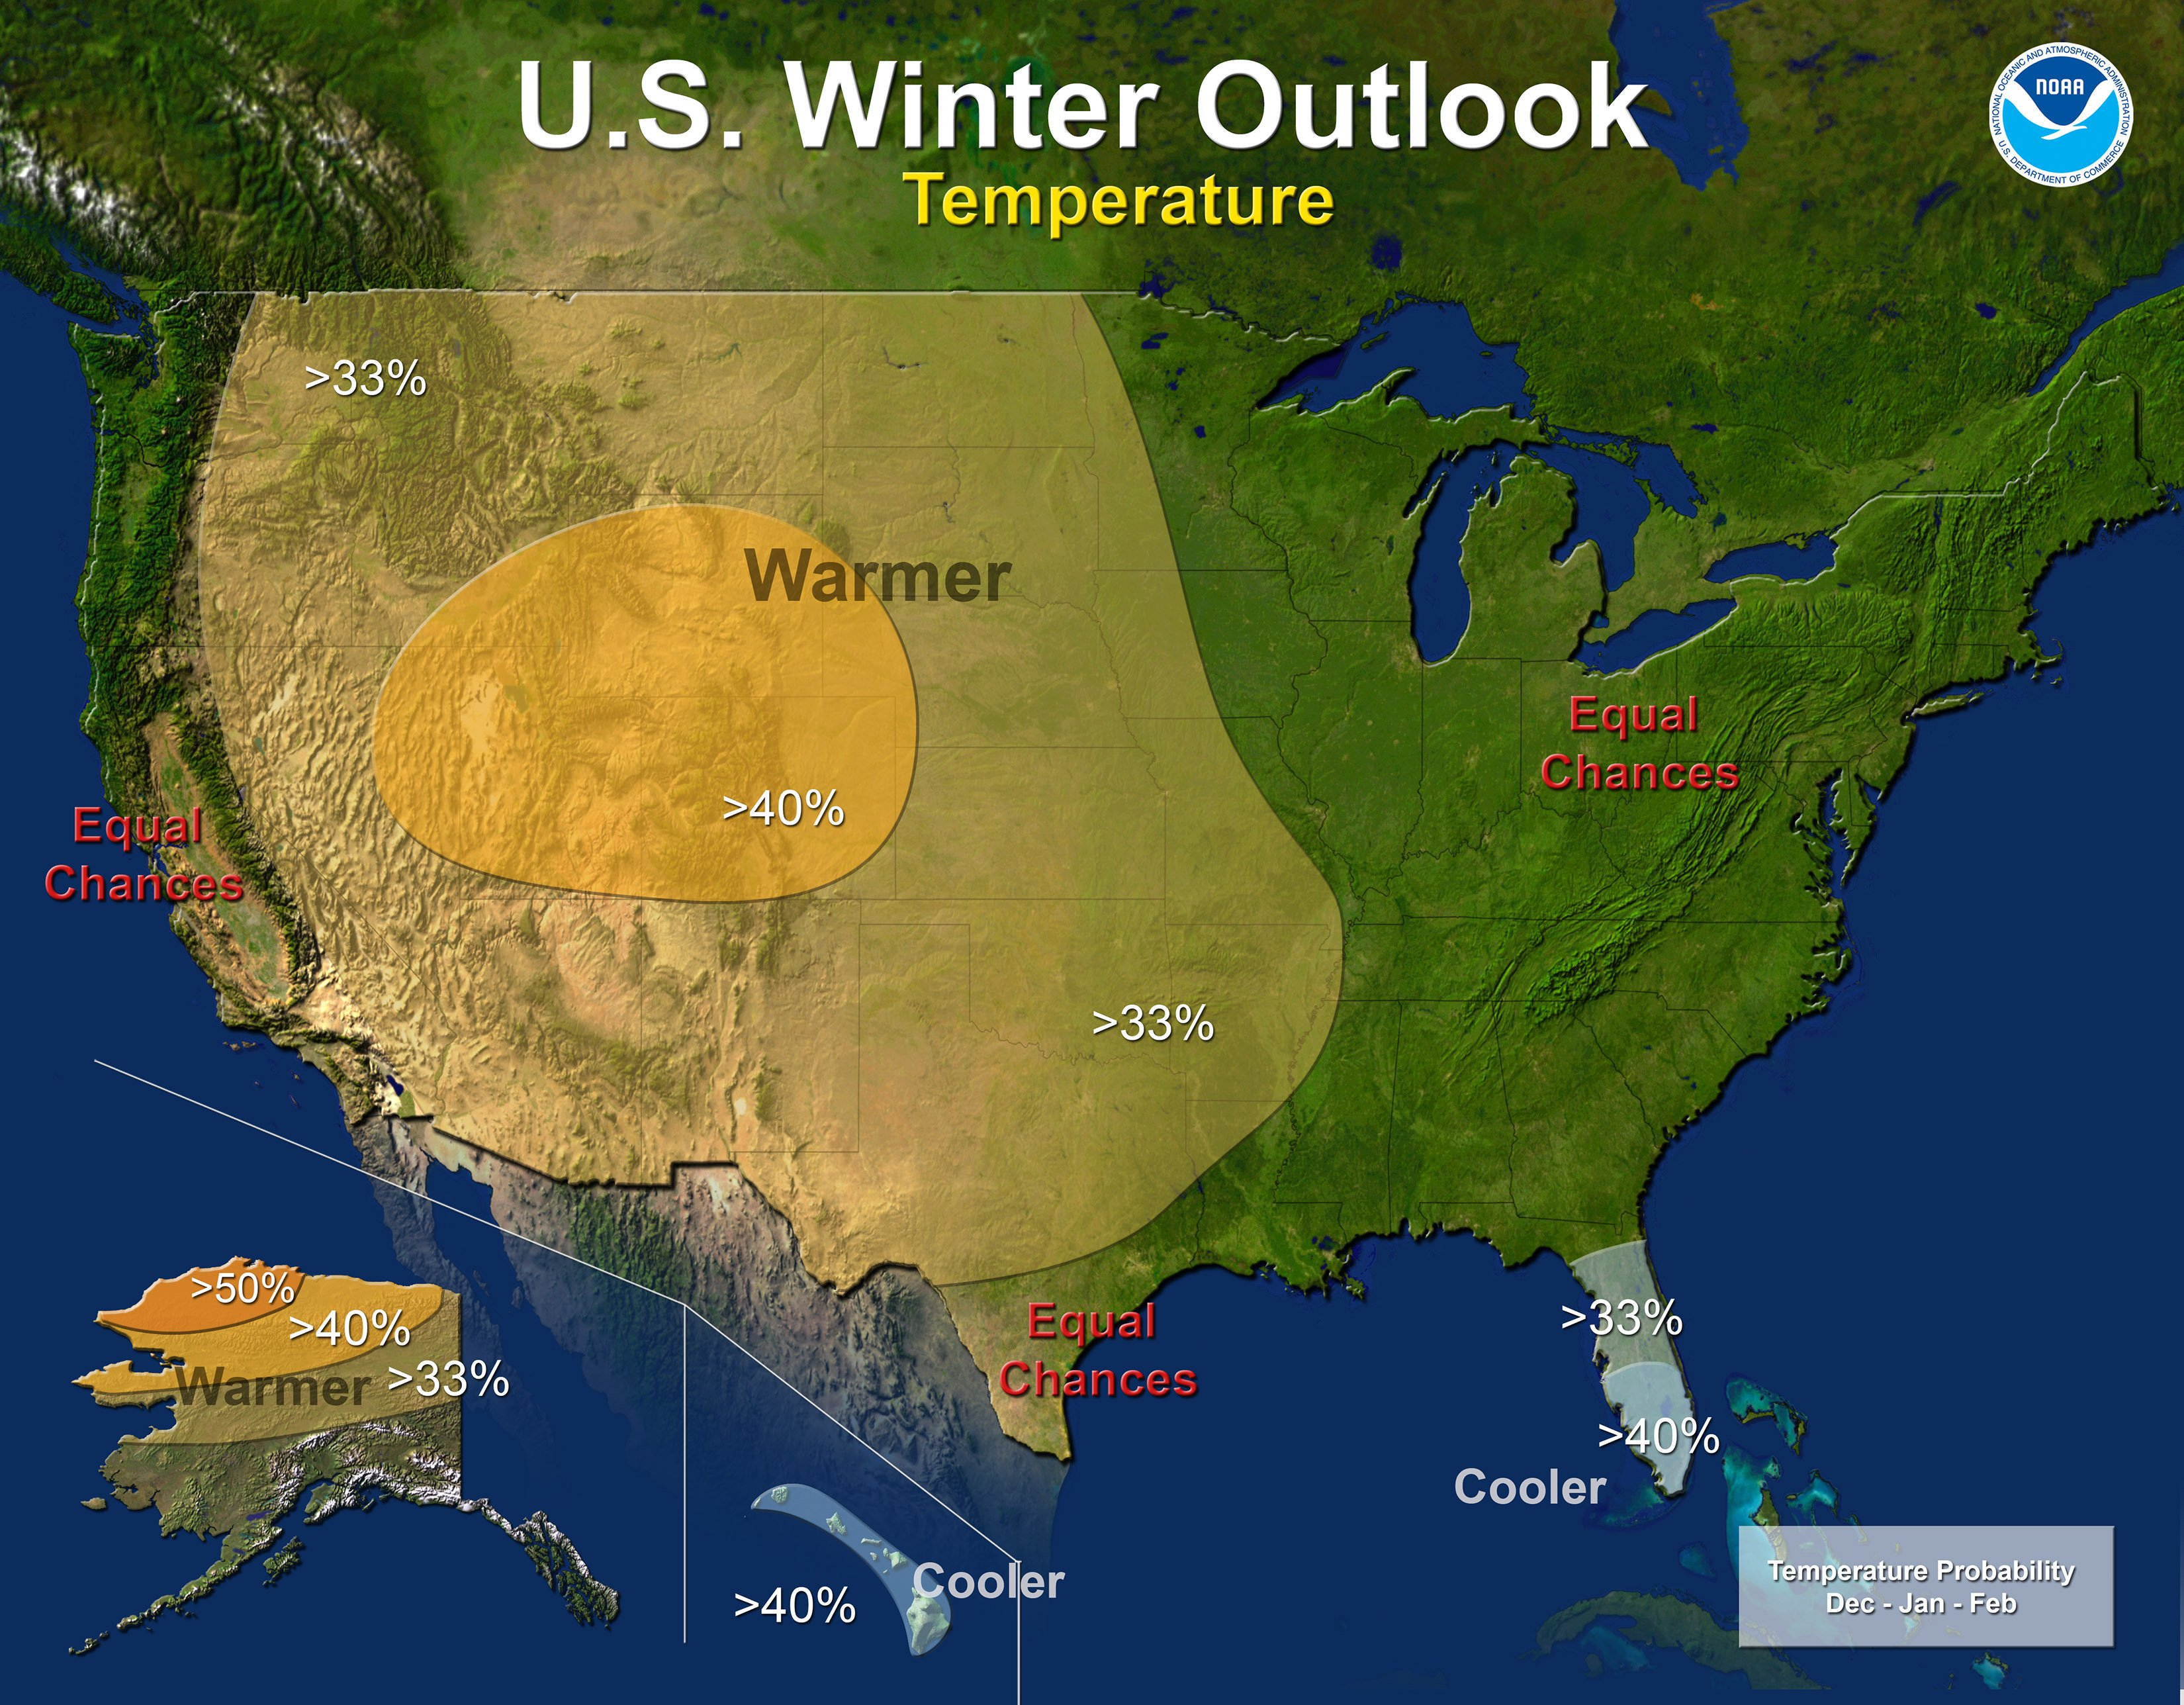 NOAA Outlook